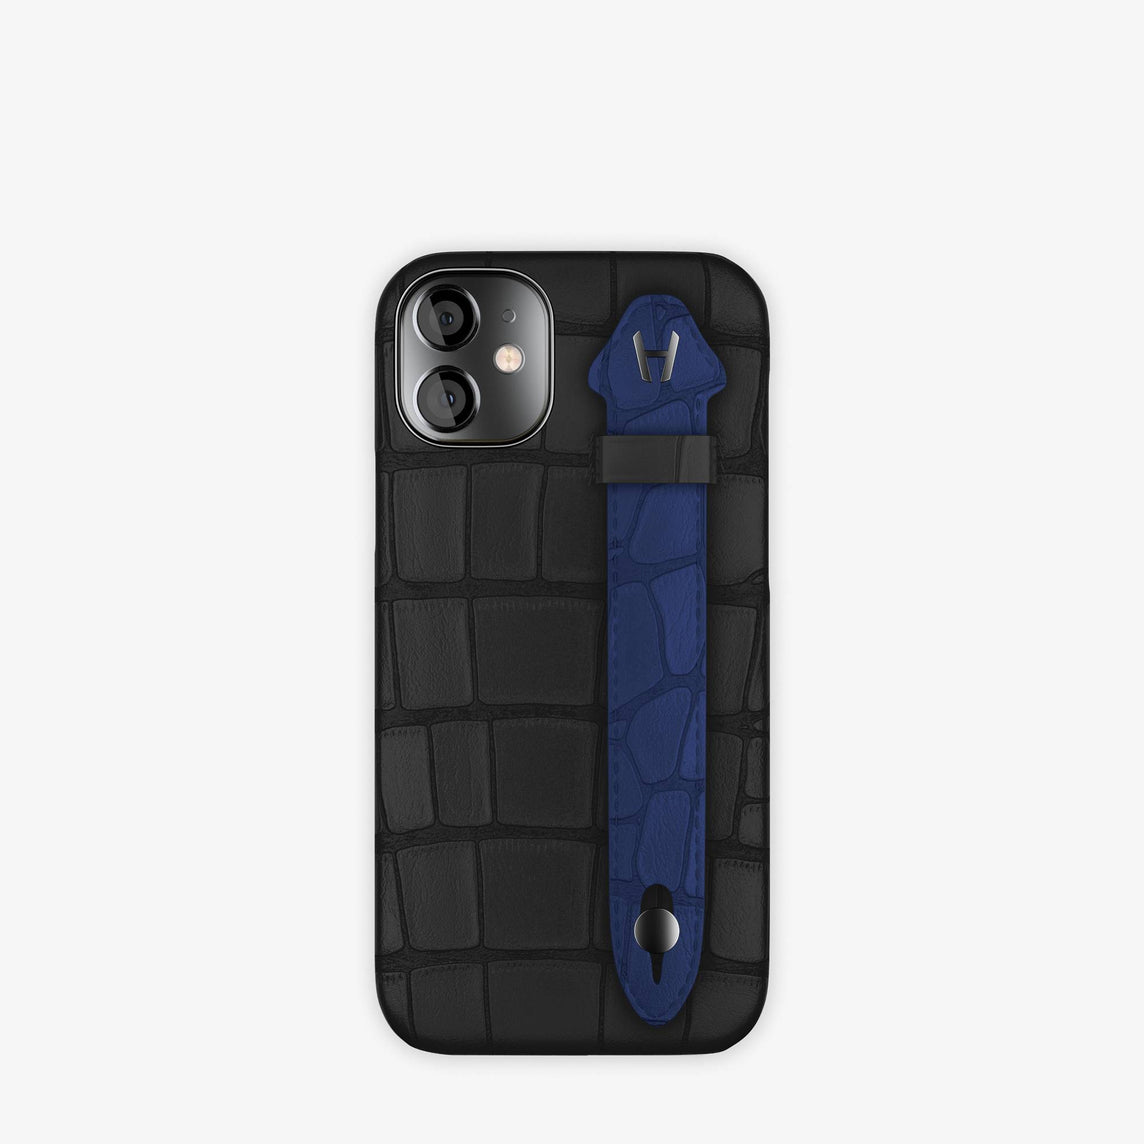 Alligator Side Finger Case iPhone 12 Mini | Black/Navy Blue -Black